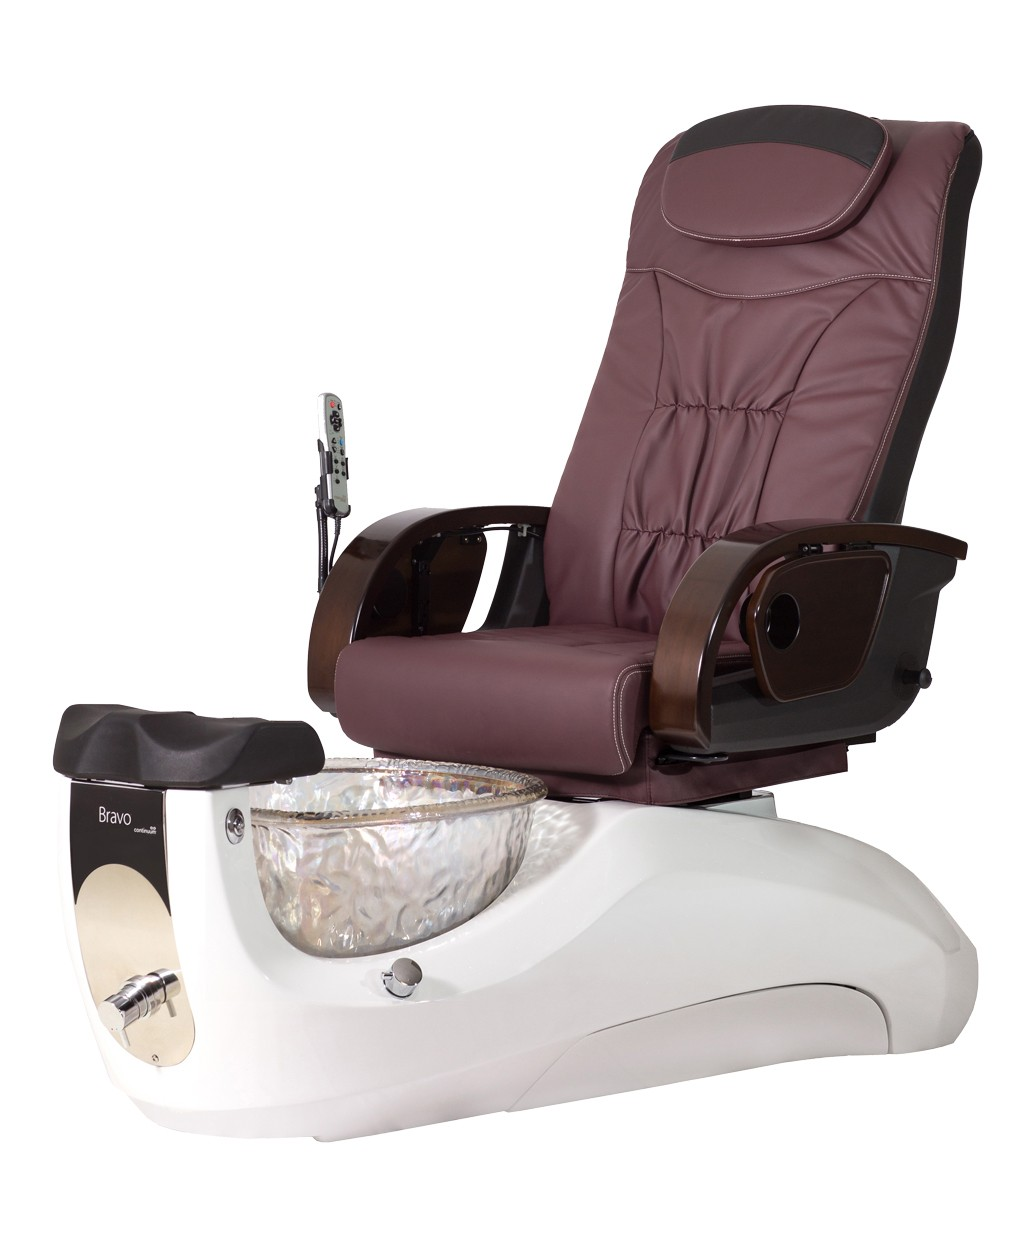 Continuum Bravo LE Pedicure Spa